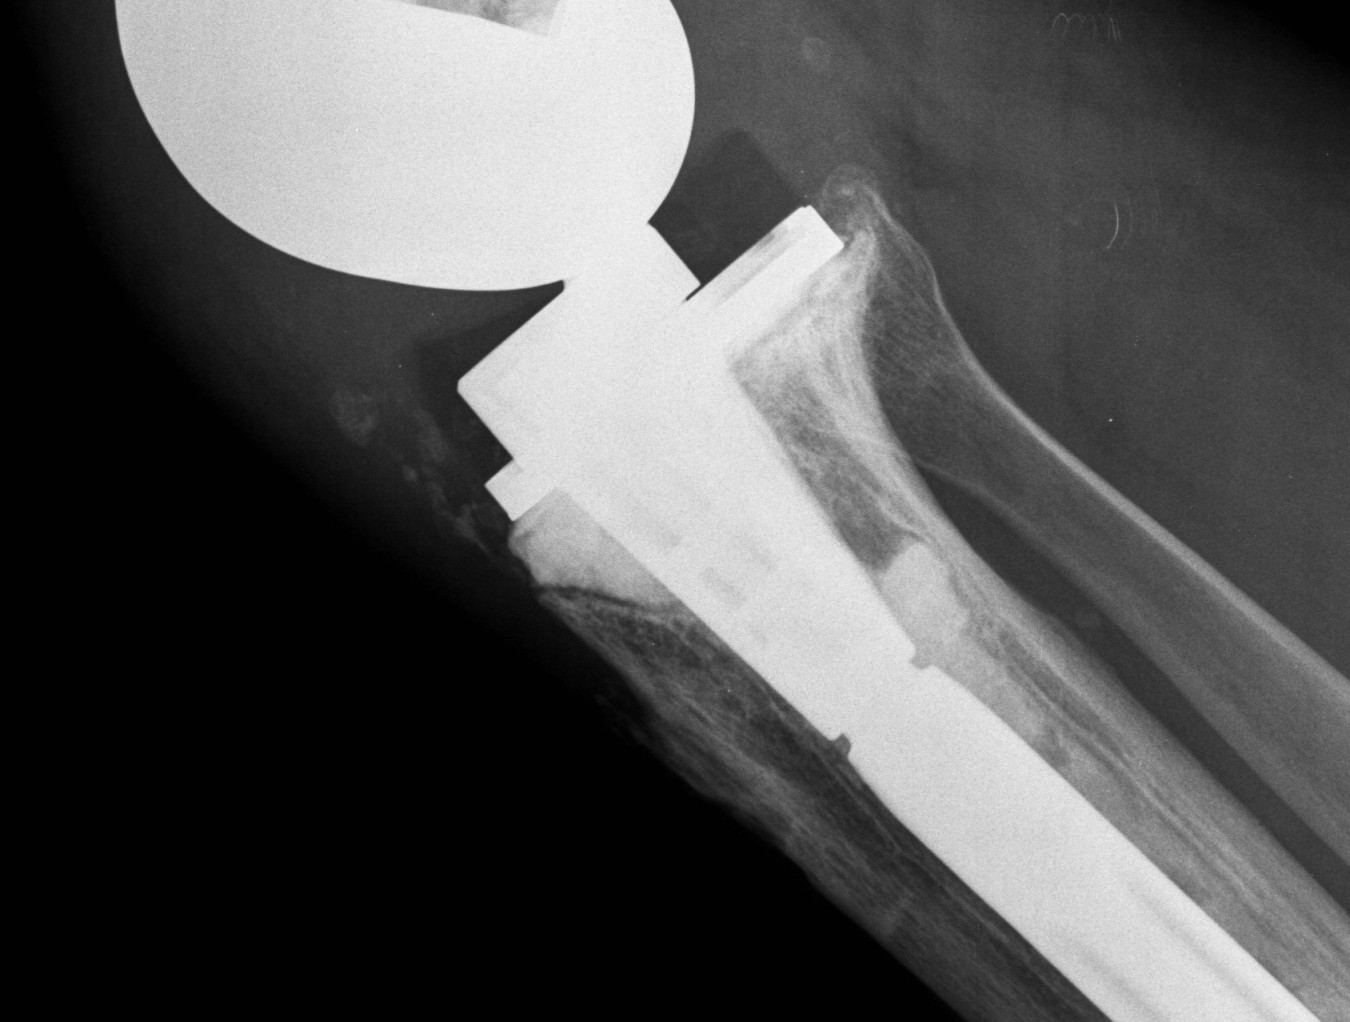 Revision TKR Bone Defect Cement Lateral.jpg